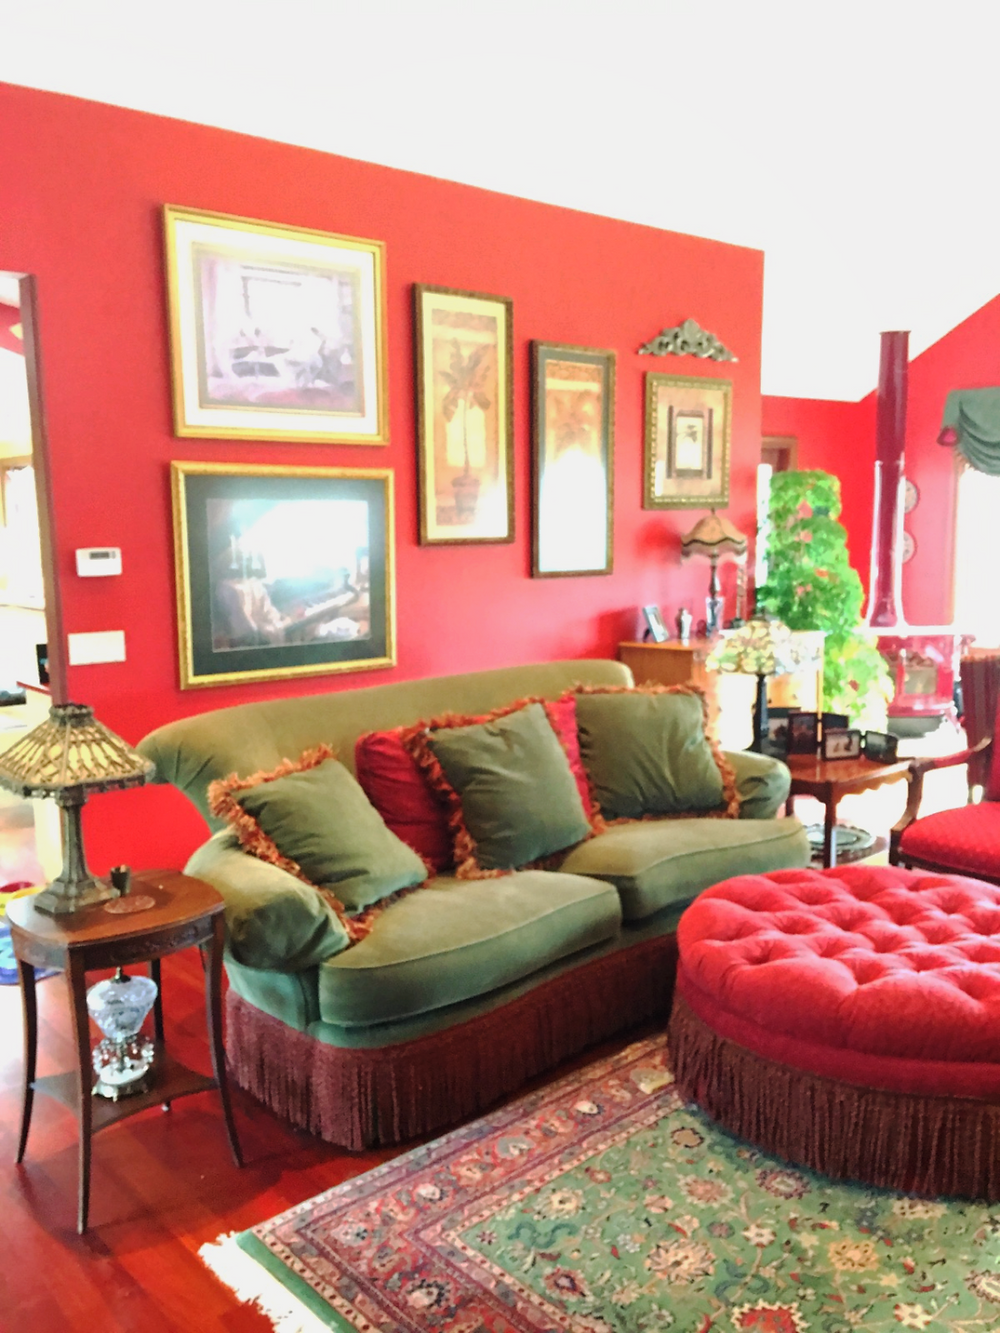 Create Drama With Grouping of Art on Large Walls